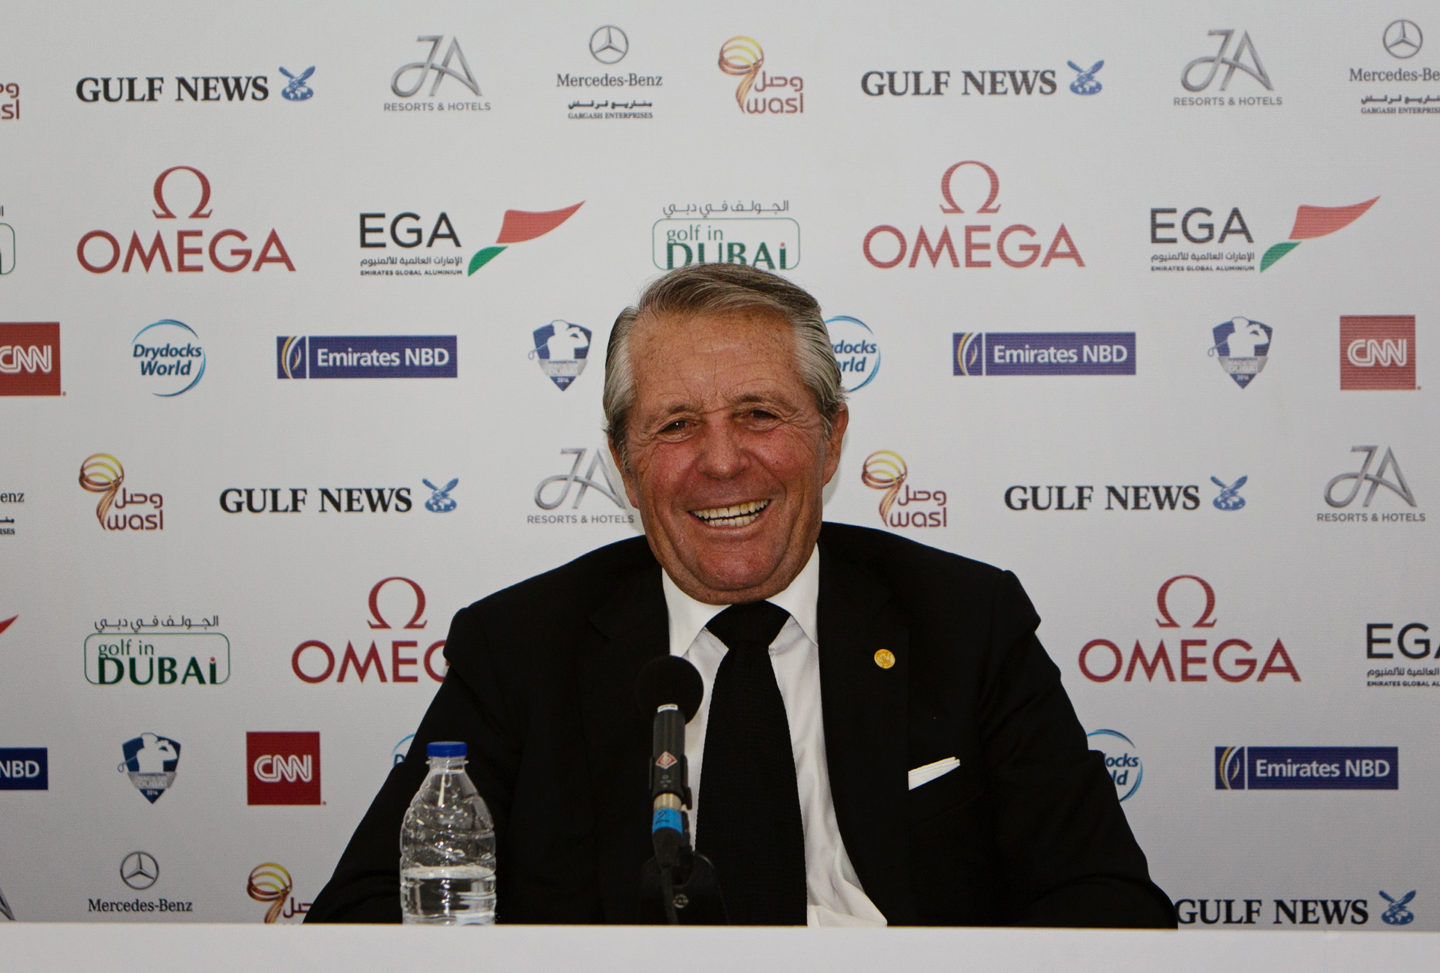 Gary player golf fotograf Golflegenden Gary Player under presskonferens